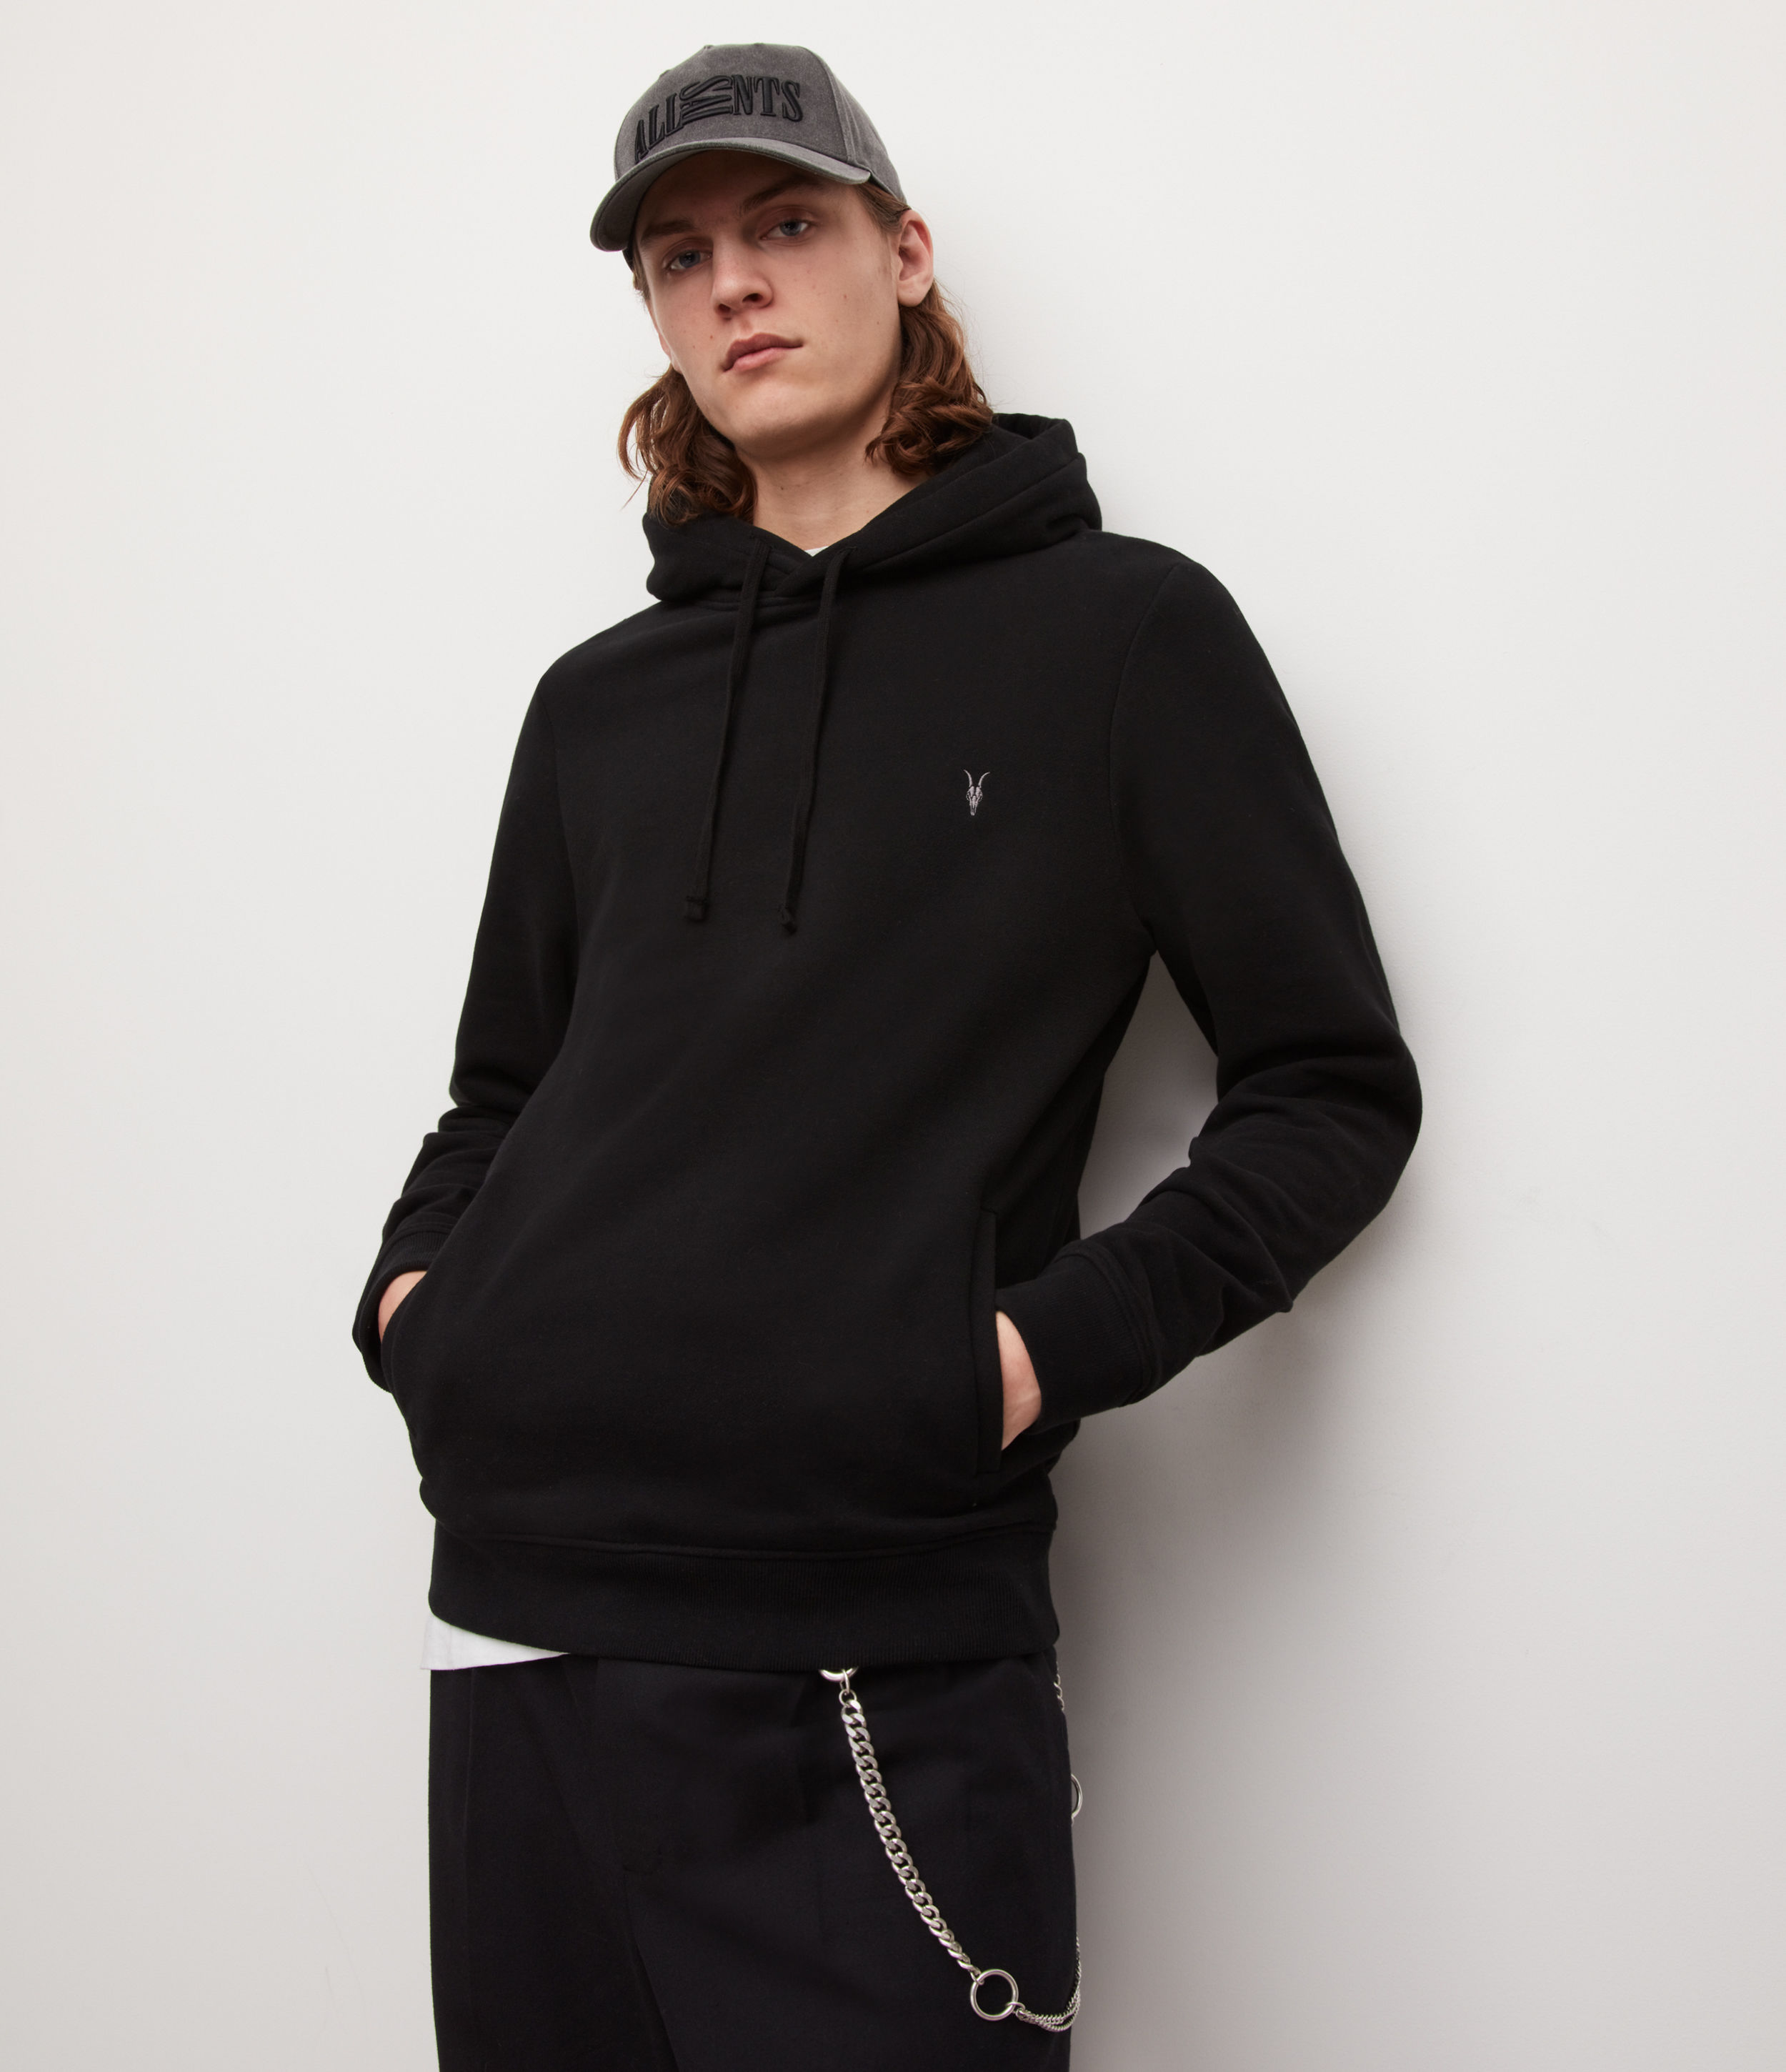 AllSaints Men's Cotton Slim Fit Raven Pullover Hoodie, Black, Size: XXL